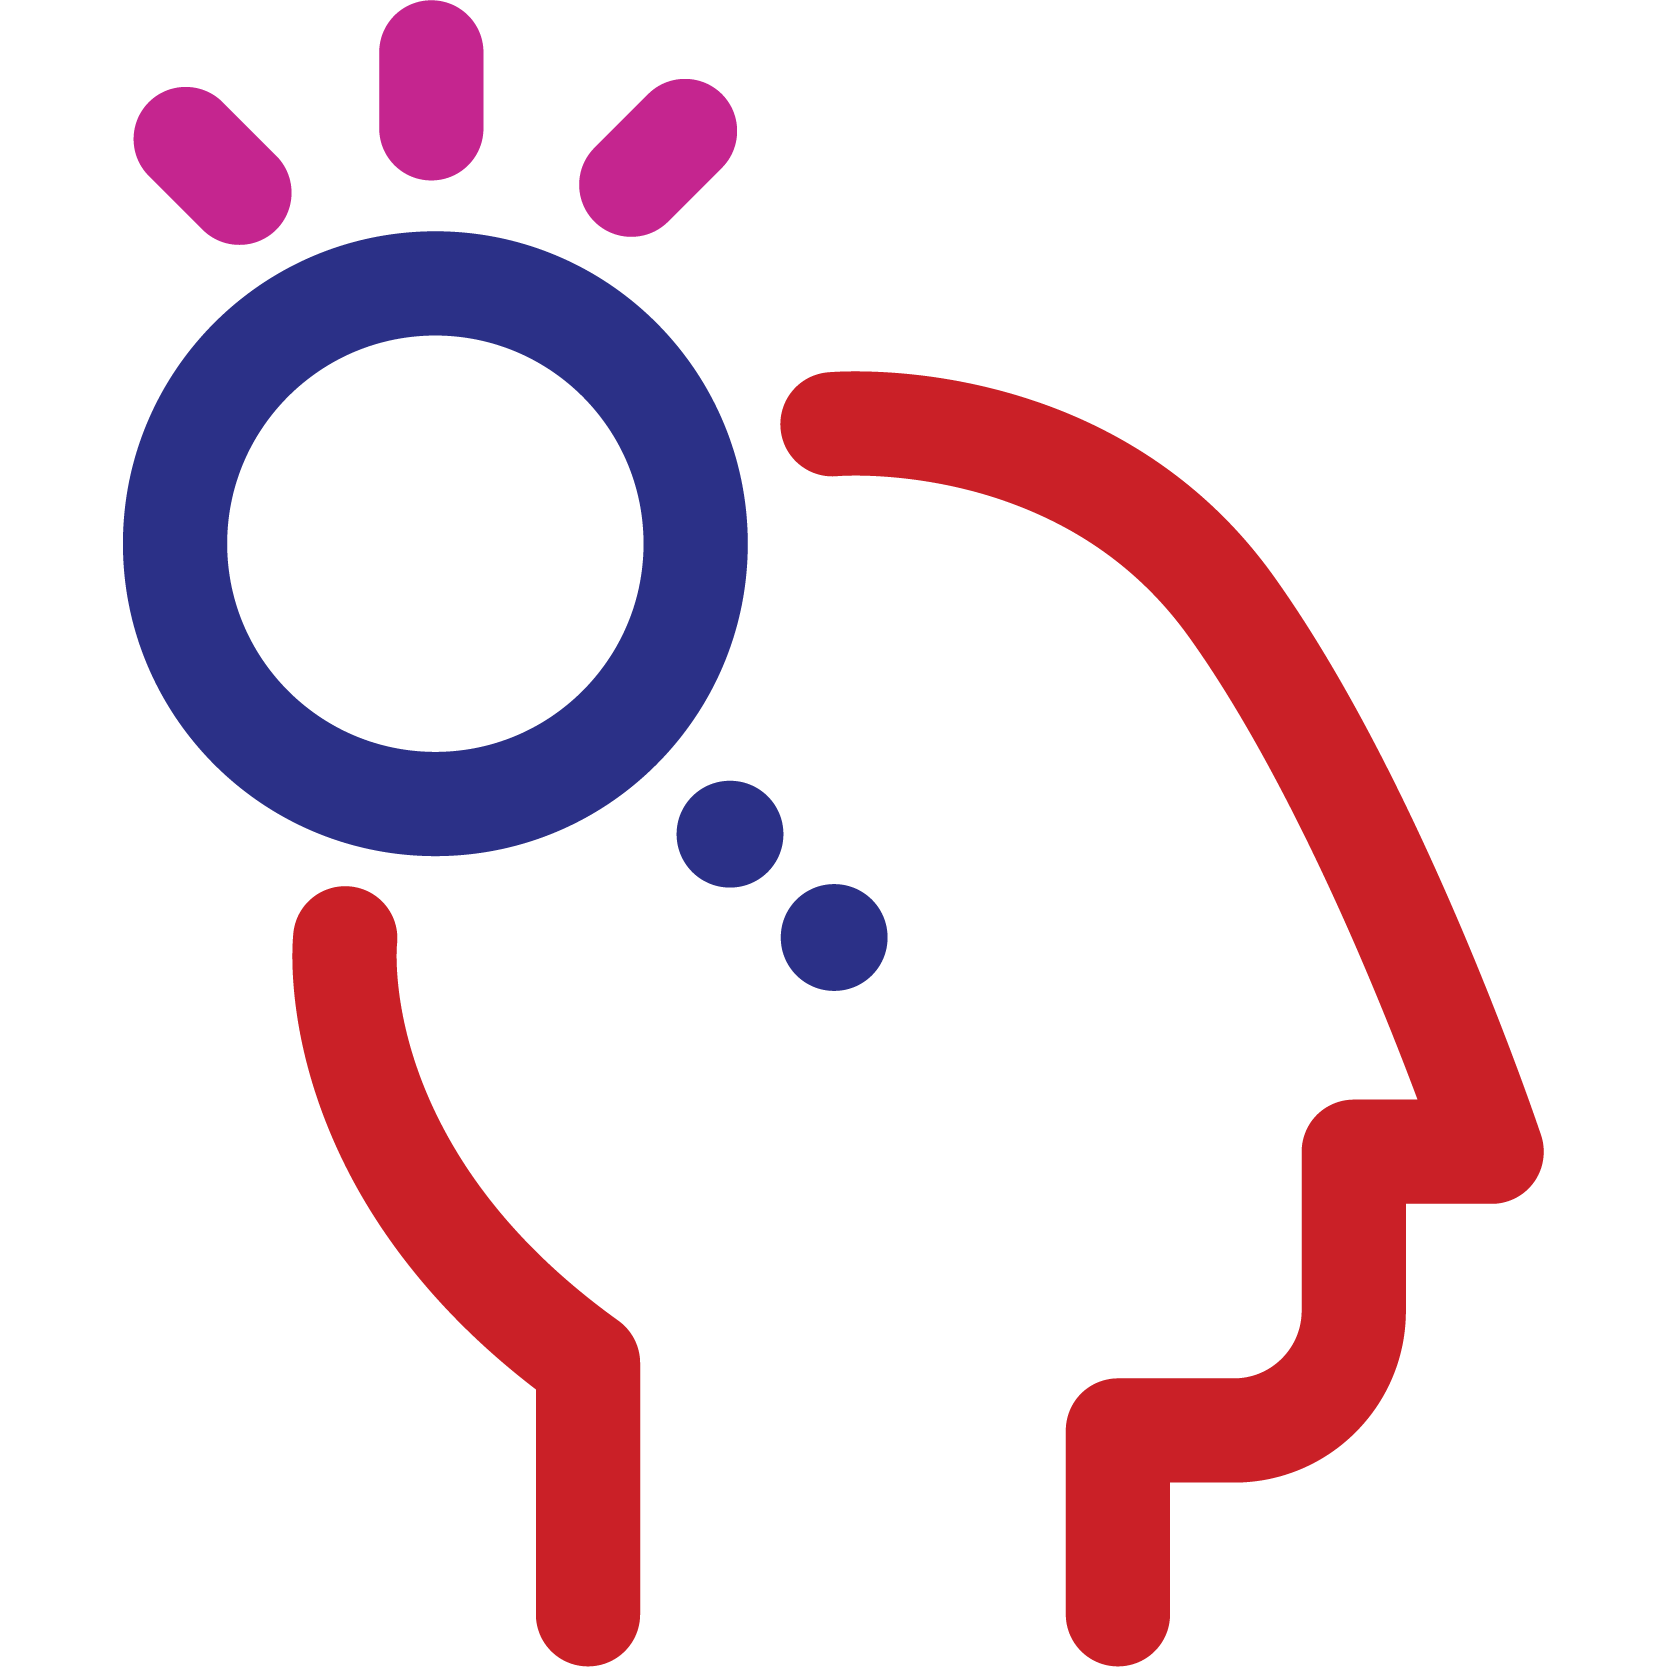 jj-icon-innovation-thought-multi-rgb-png-jnjiconinnovationthoughtmultirgb.png